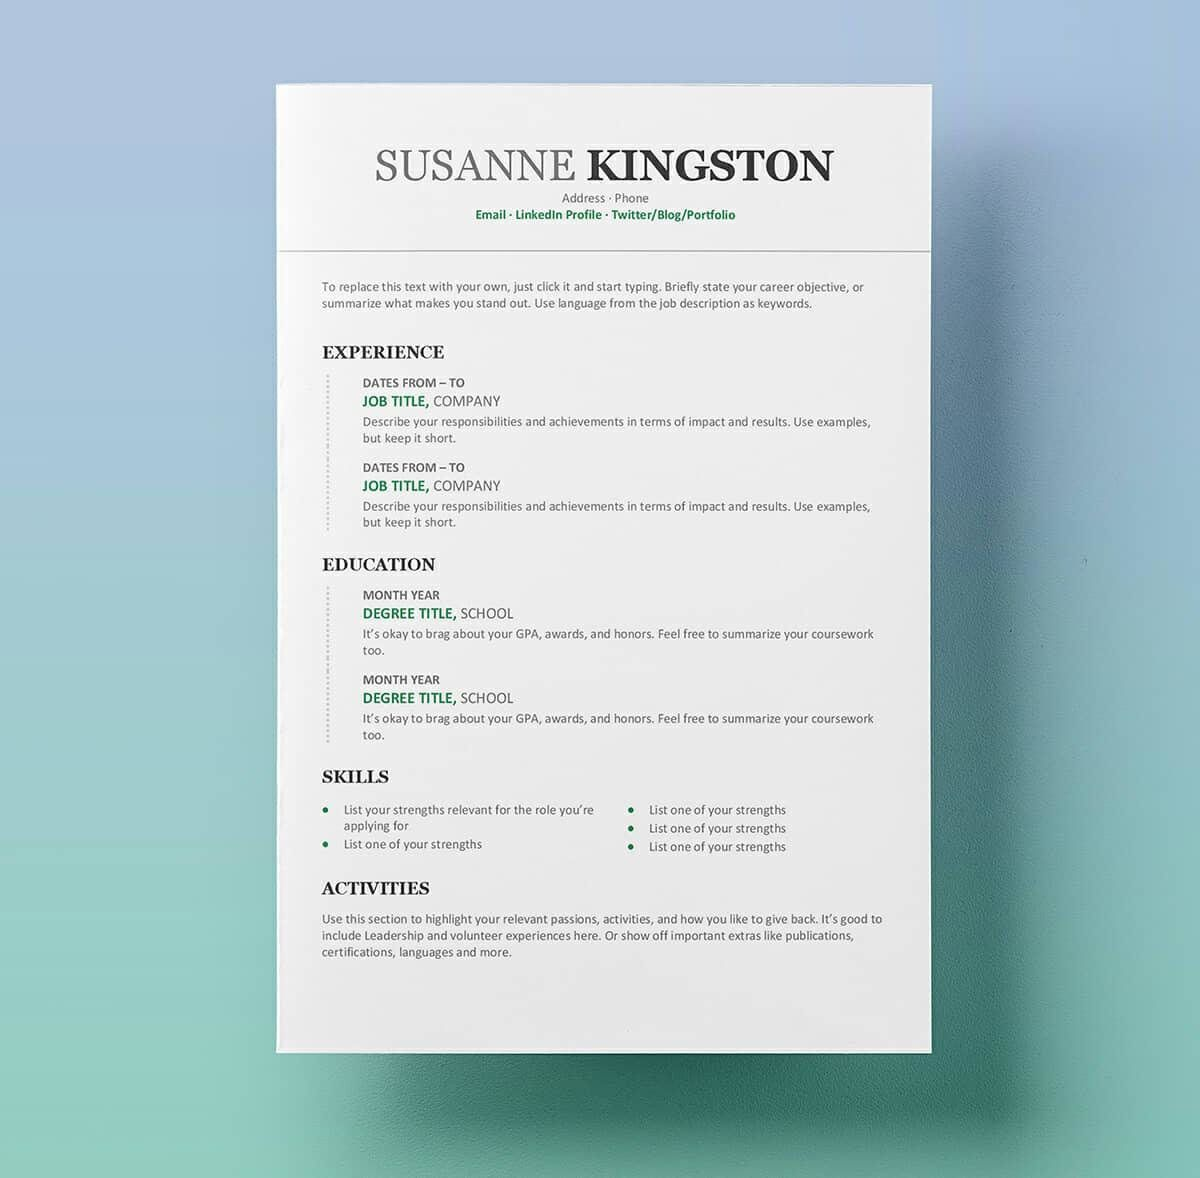 007 Frightening Resume Template Free Word Doc Picture  Cv Download Document For StudentFull